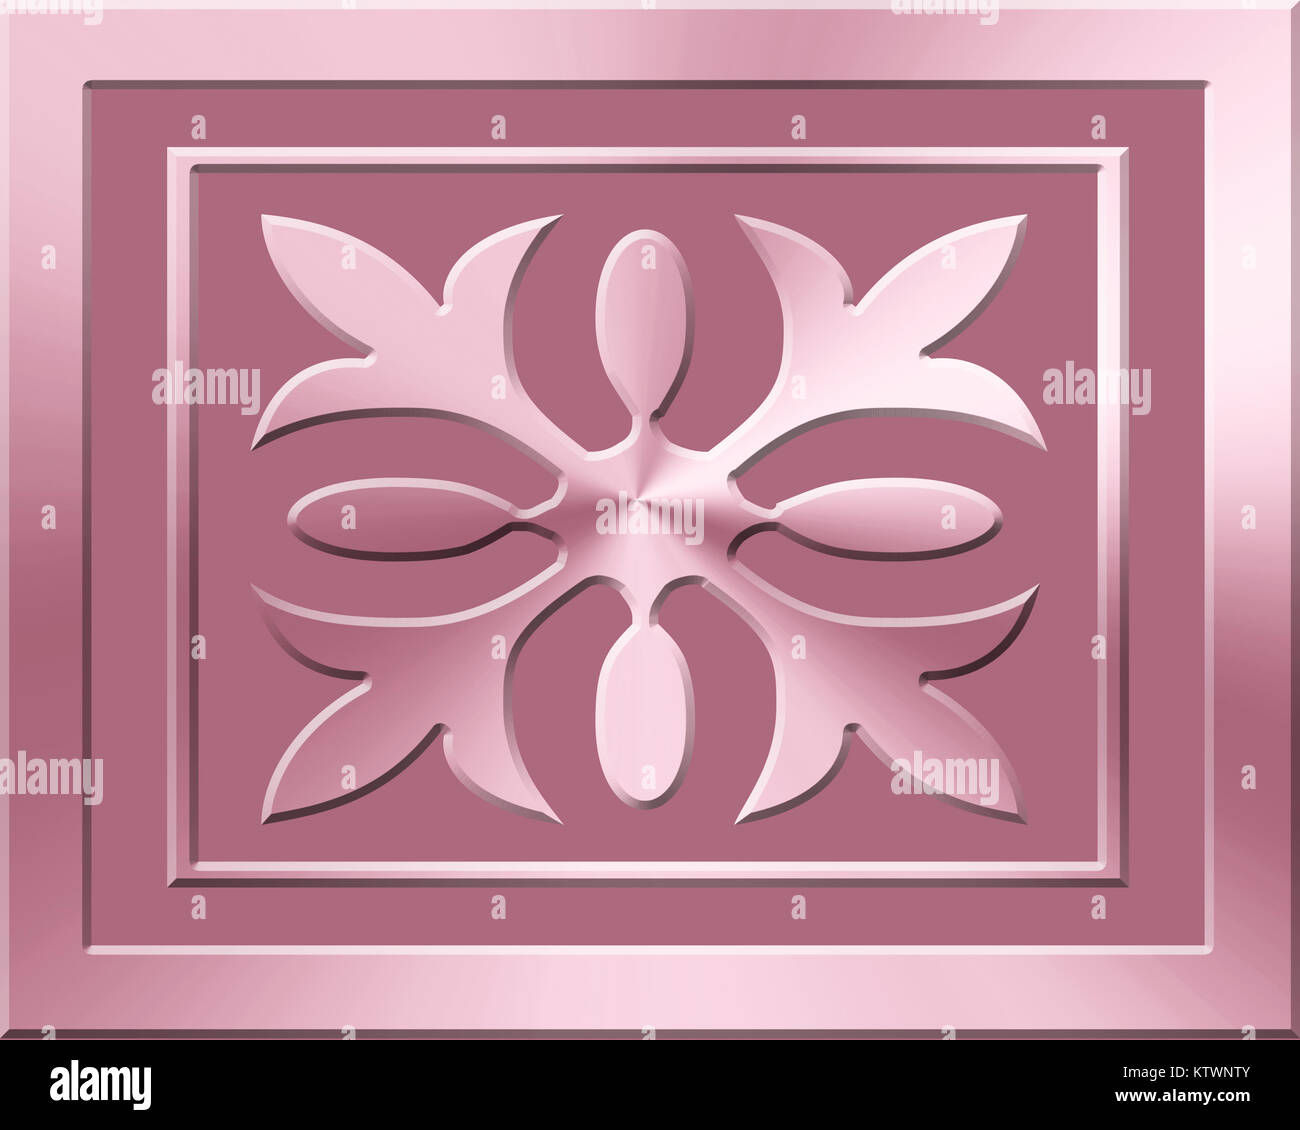 Ornamental emblem in two shades of Pastel Pink - Stock Image